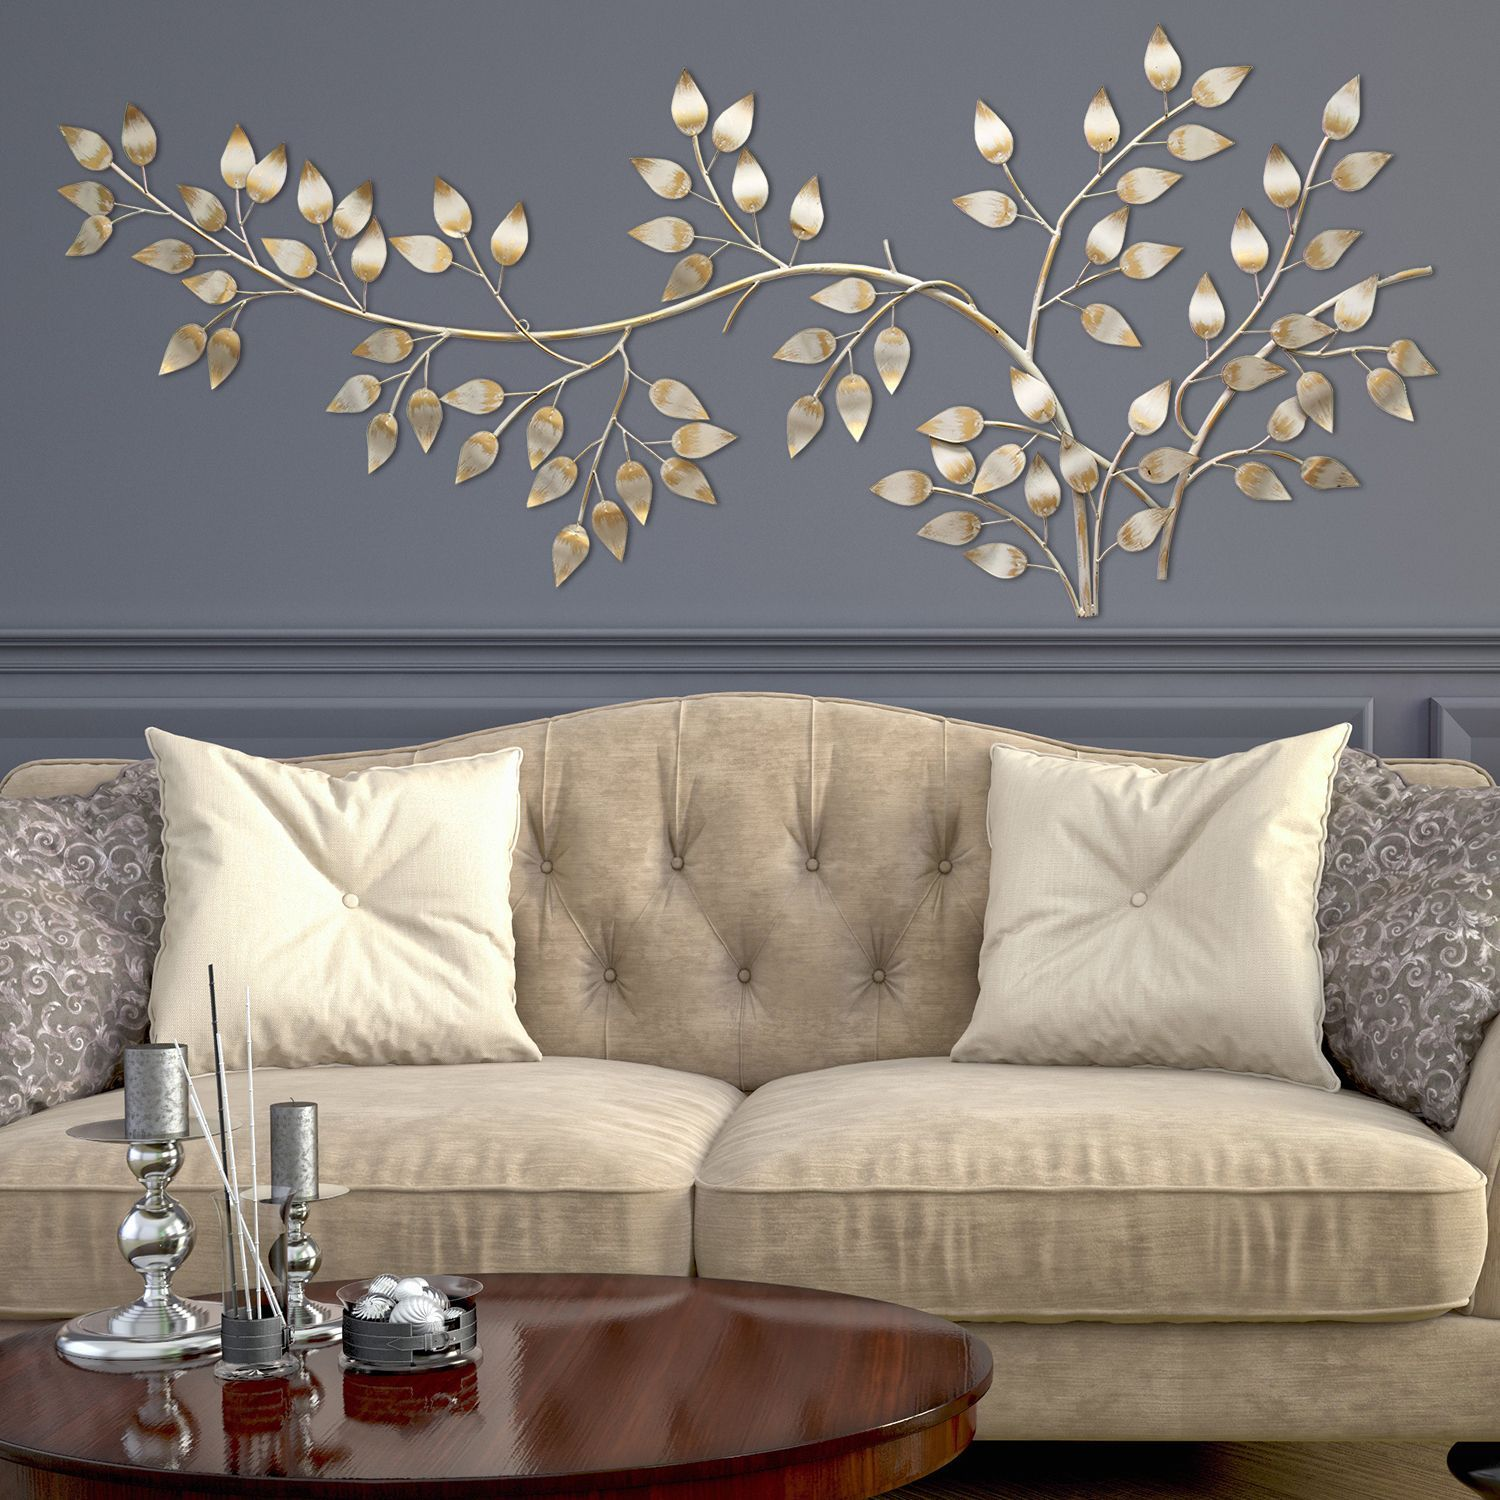 Stratton home decor brushed gold flowing leaves wall decor metal